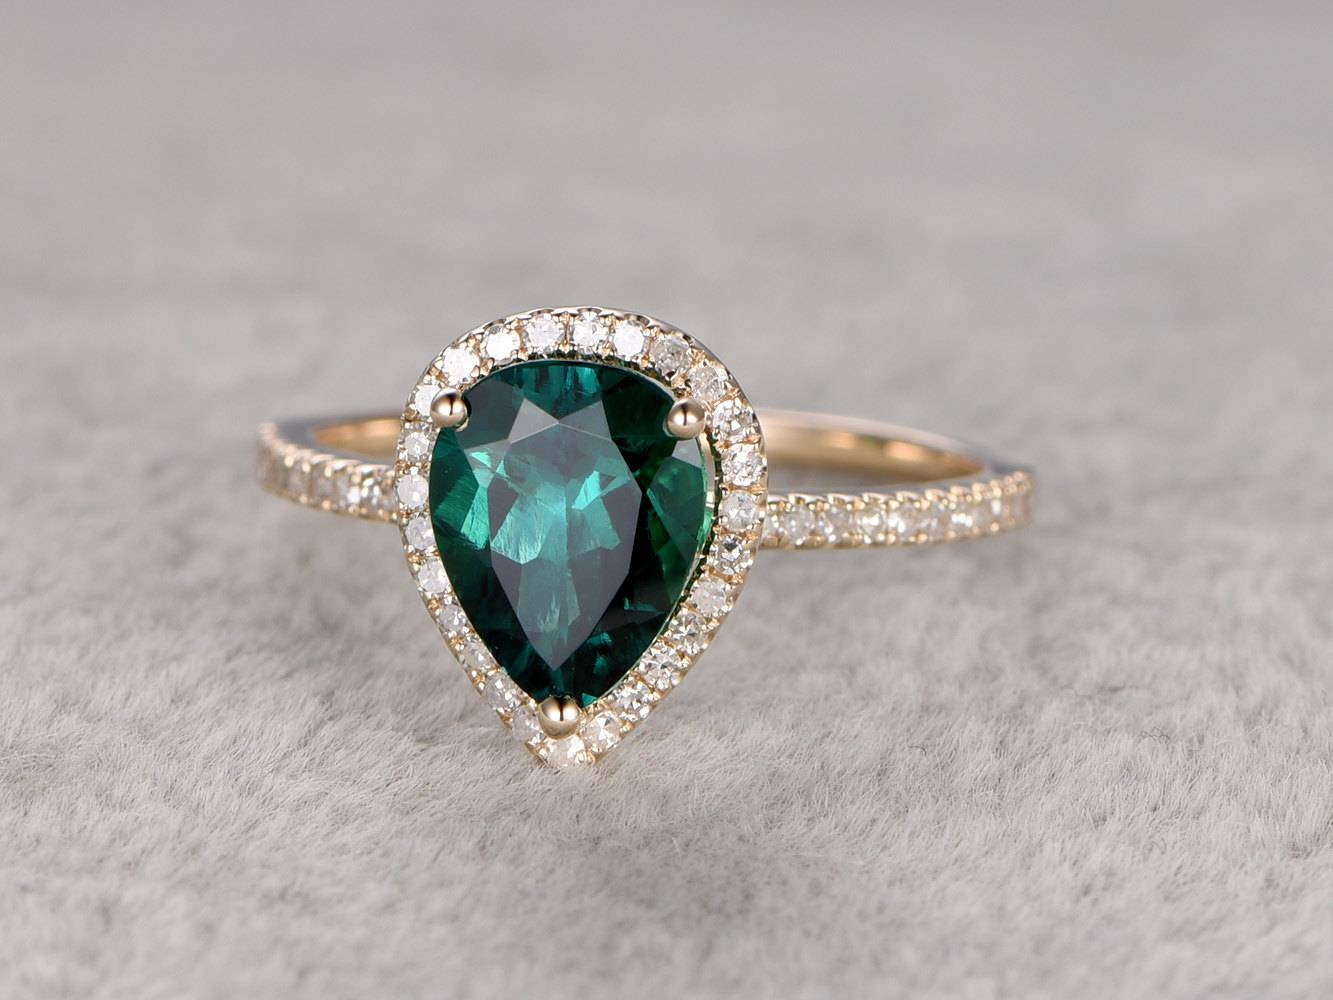 Engagement Rings : Emerald Engagement Rings Amazing Engagement Throughout Emerald Engagement Rings (View 8 of 15)